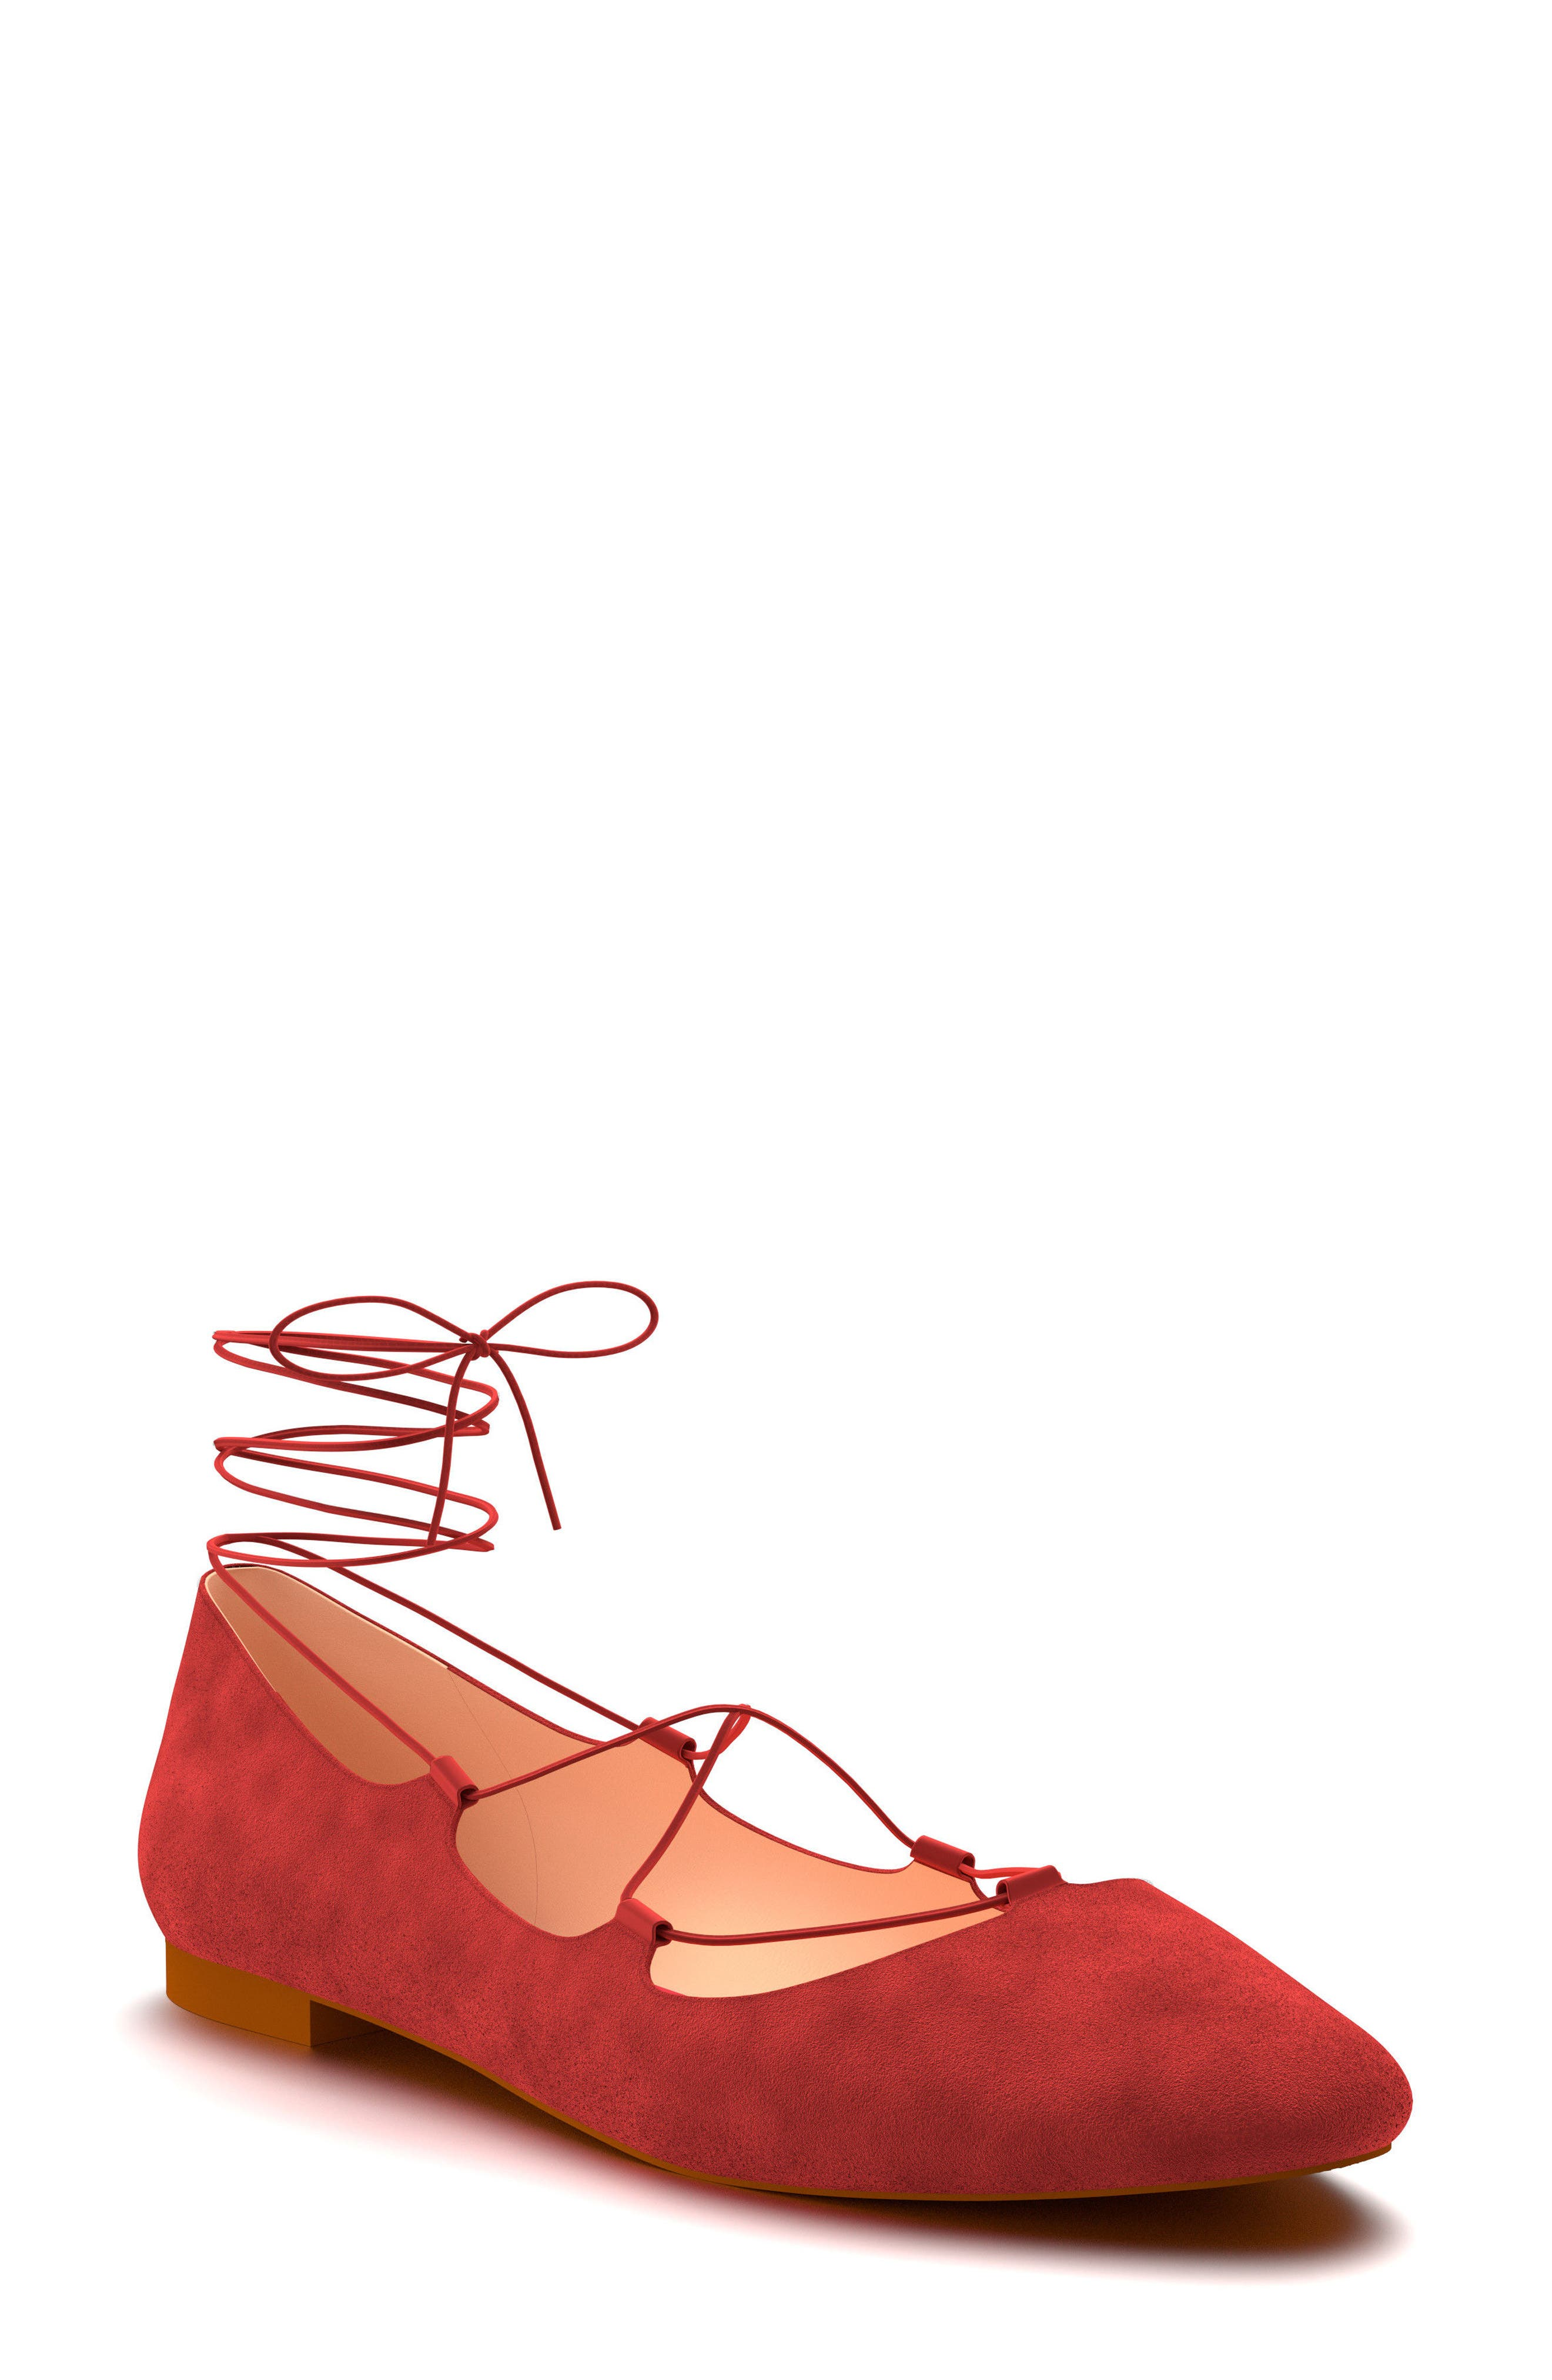 Ghillie Ballet Flat,                         Main,                         color, Dark Red Suede